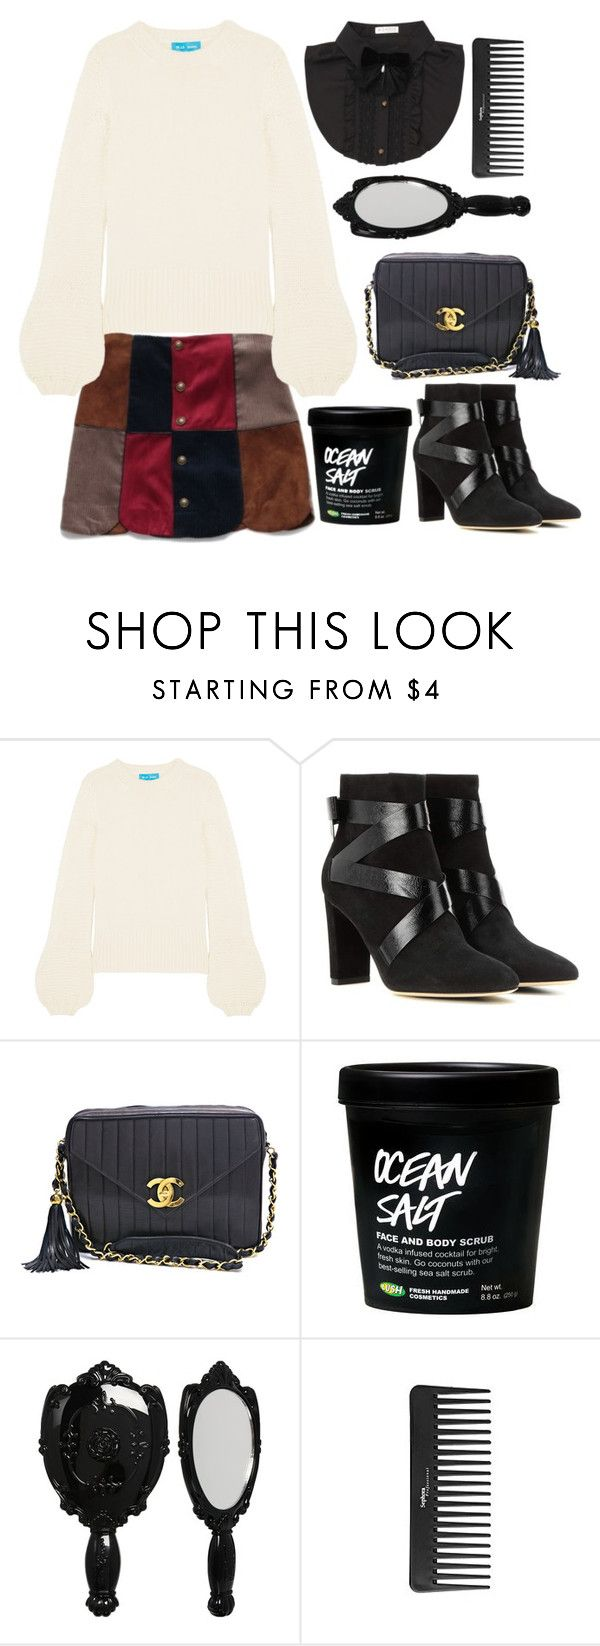 """""""Somethin' beautiful"""" by natjulieta ❤ liked on Polyvore featuring M.i.h Jeans, Jimmy Choo, Chanel, Anna Sui, Sephora Collection, ootd, Coordinates, TSJ and LilyBrown"""